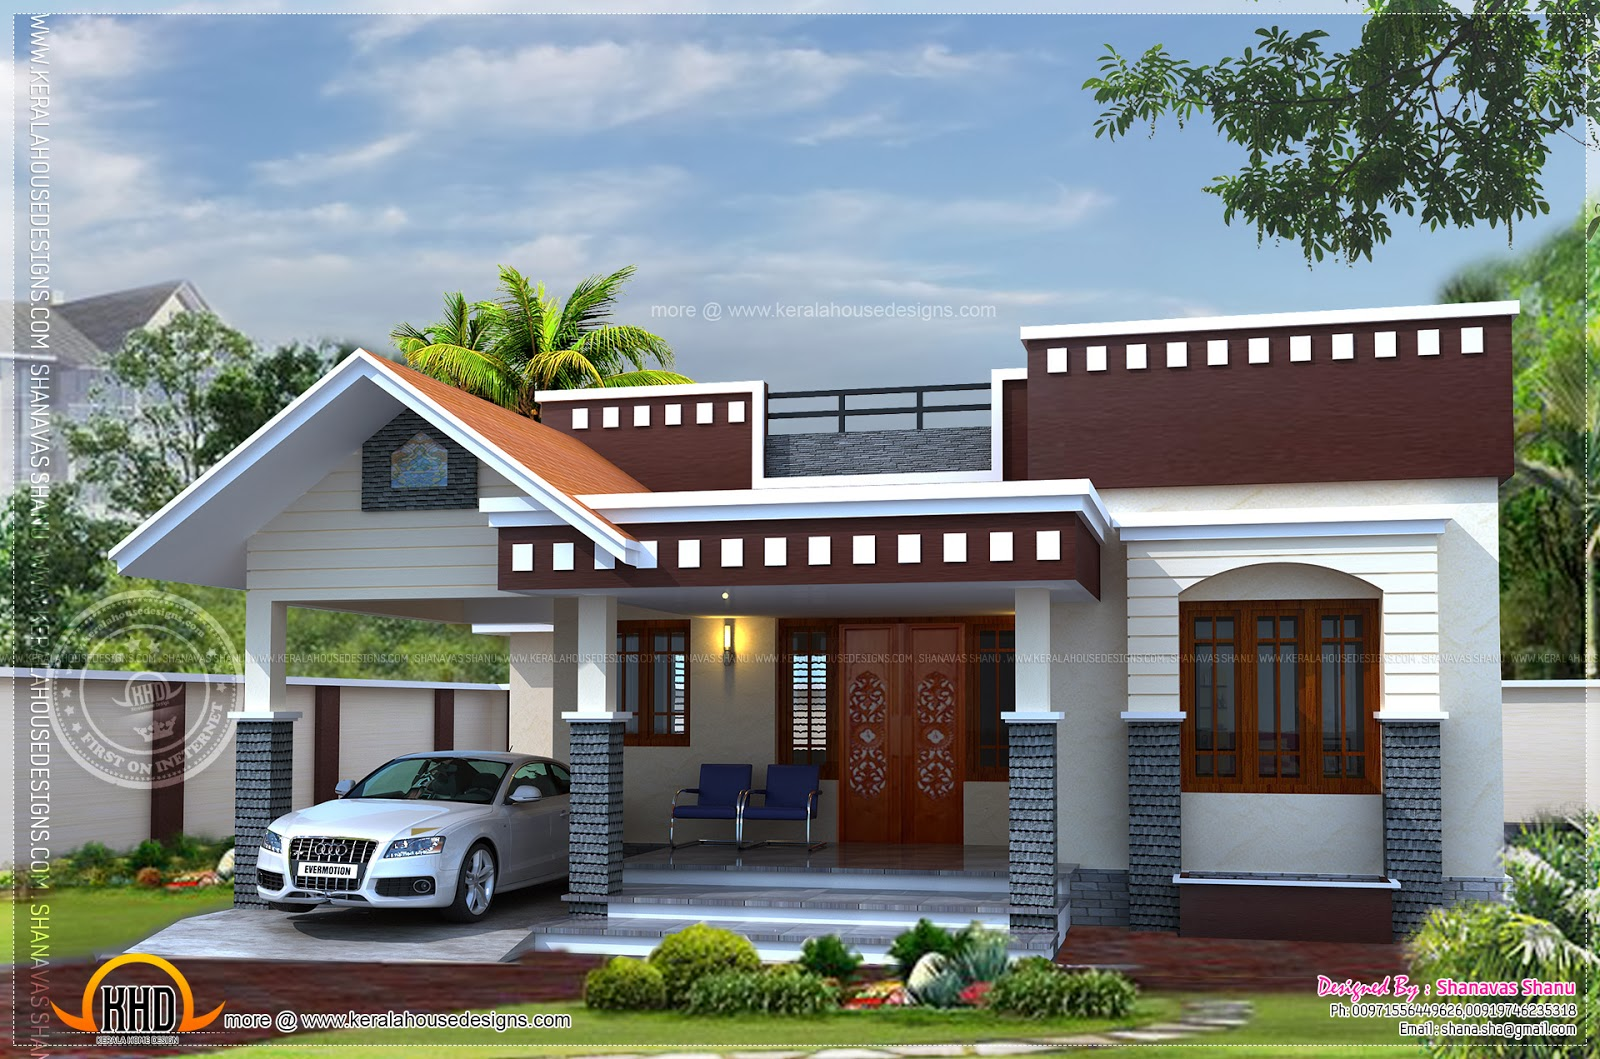 Home plan of small house kerala home design and floor plans for Small house design in kerala